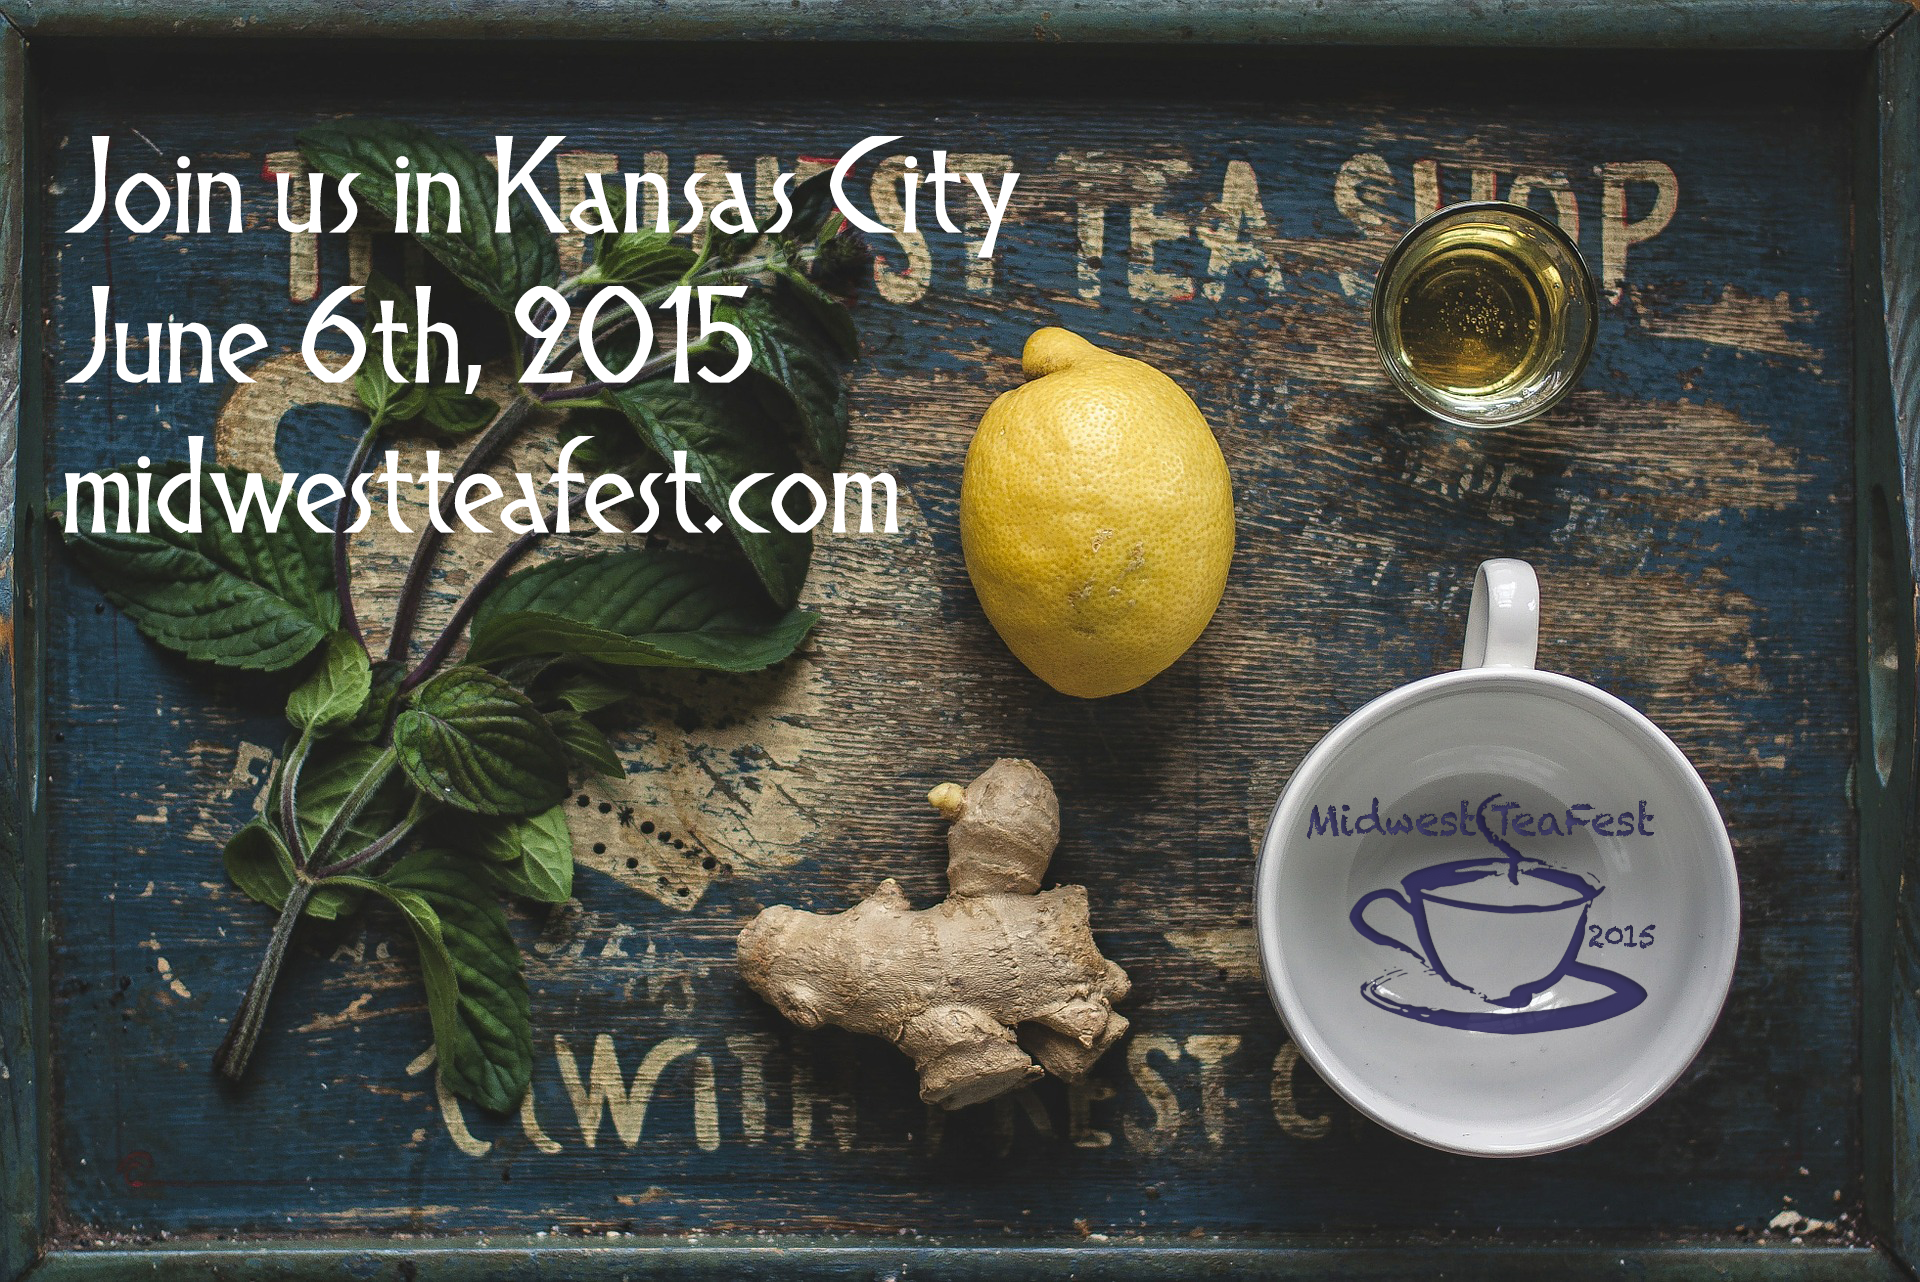 Join us in Kansas City for the Midwest Tea Fest